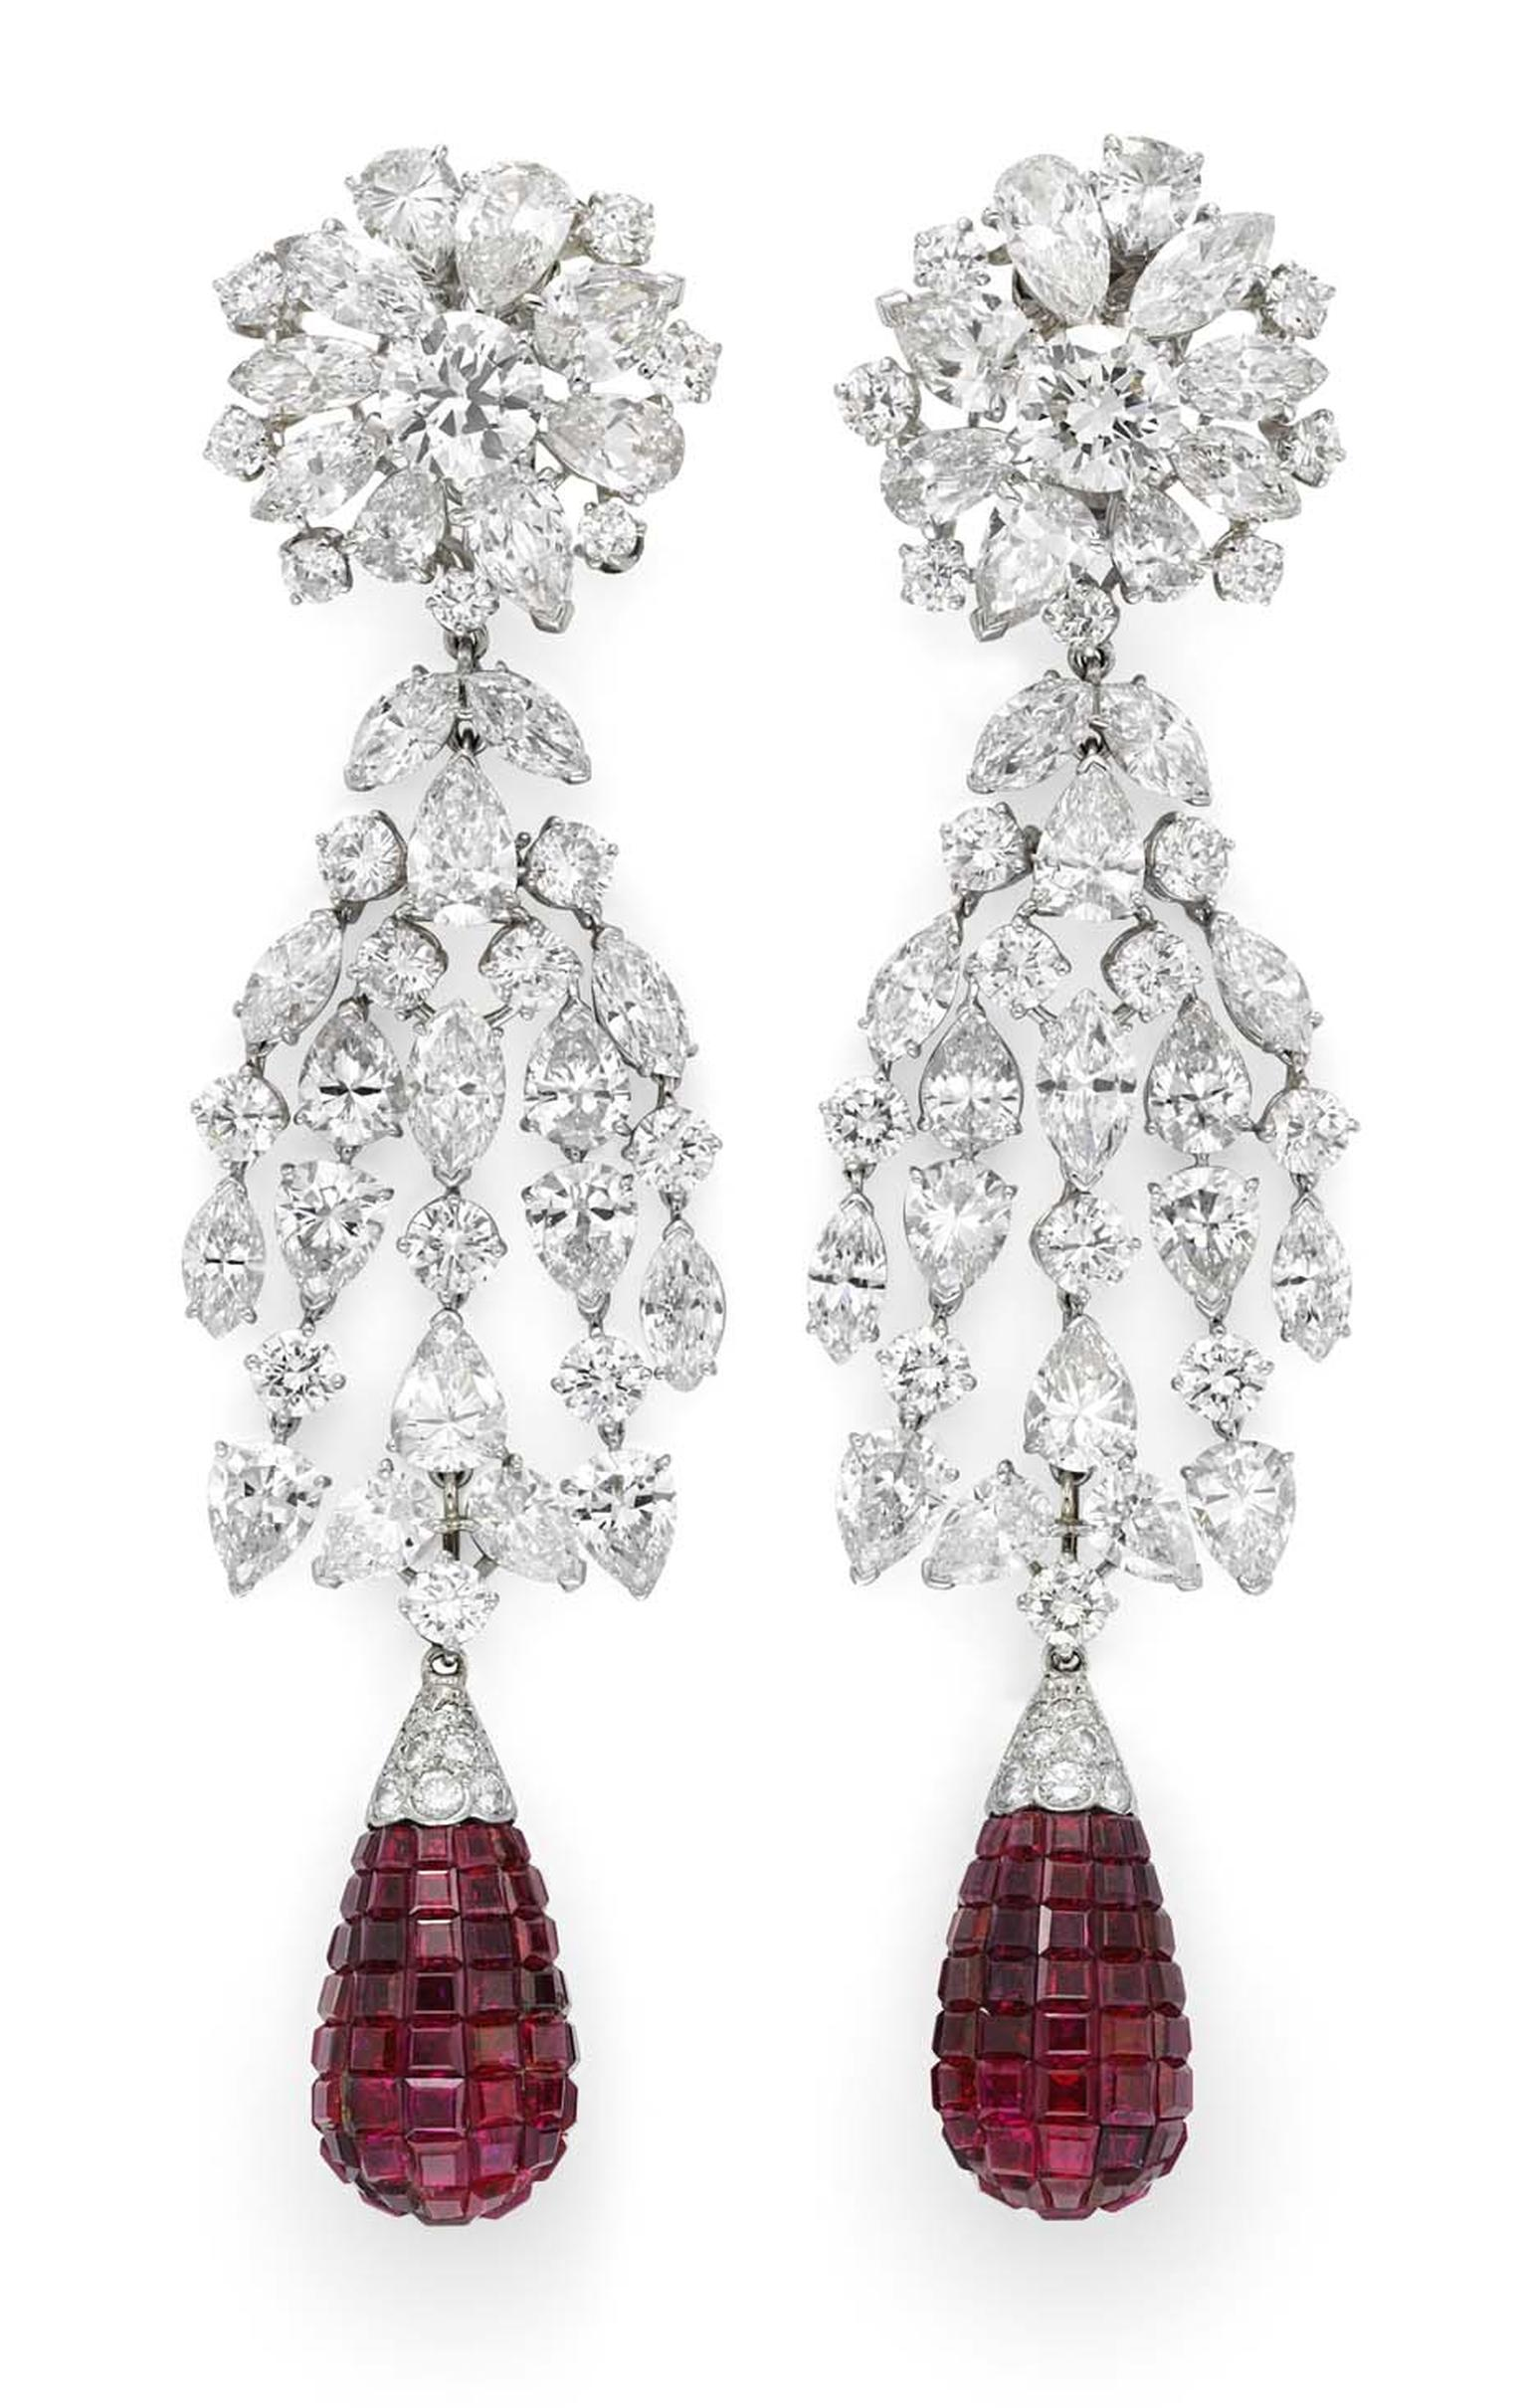 Pair of invisibly set ruby and diamond cascade earrings by Van Cleef & Arpels, available at Simon Teakle.